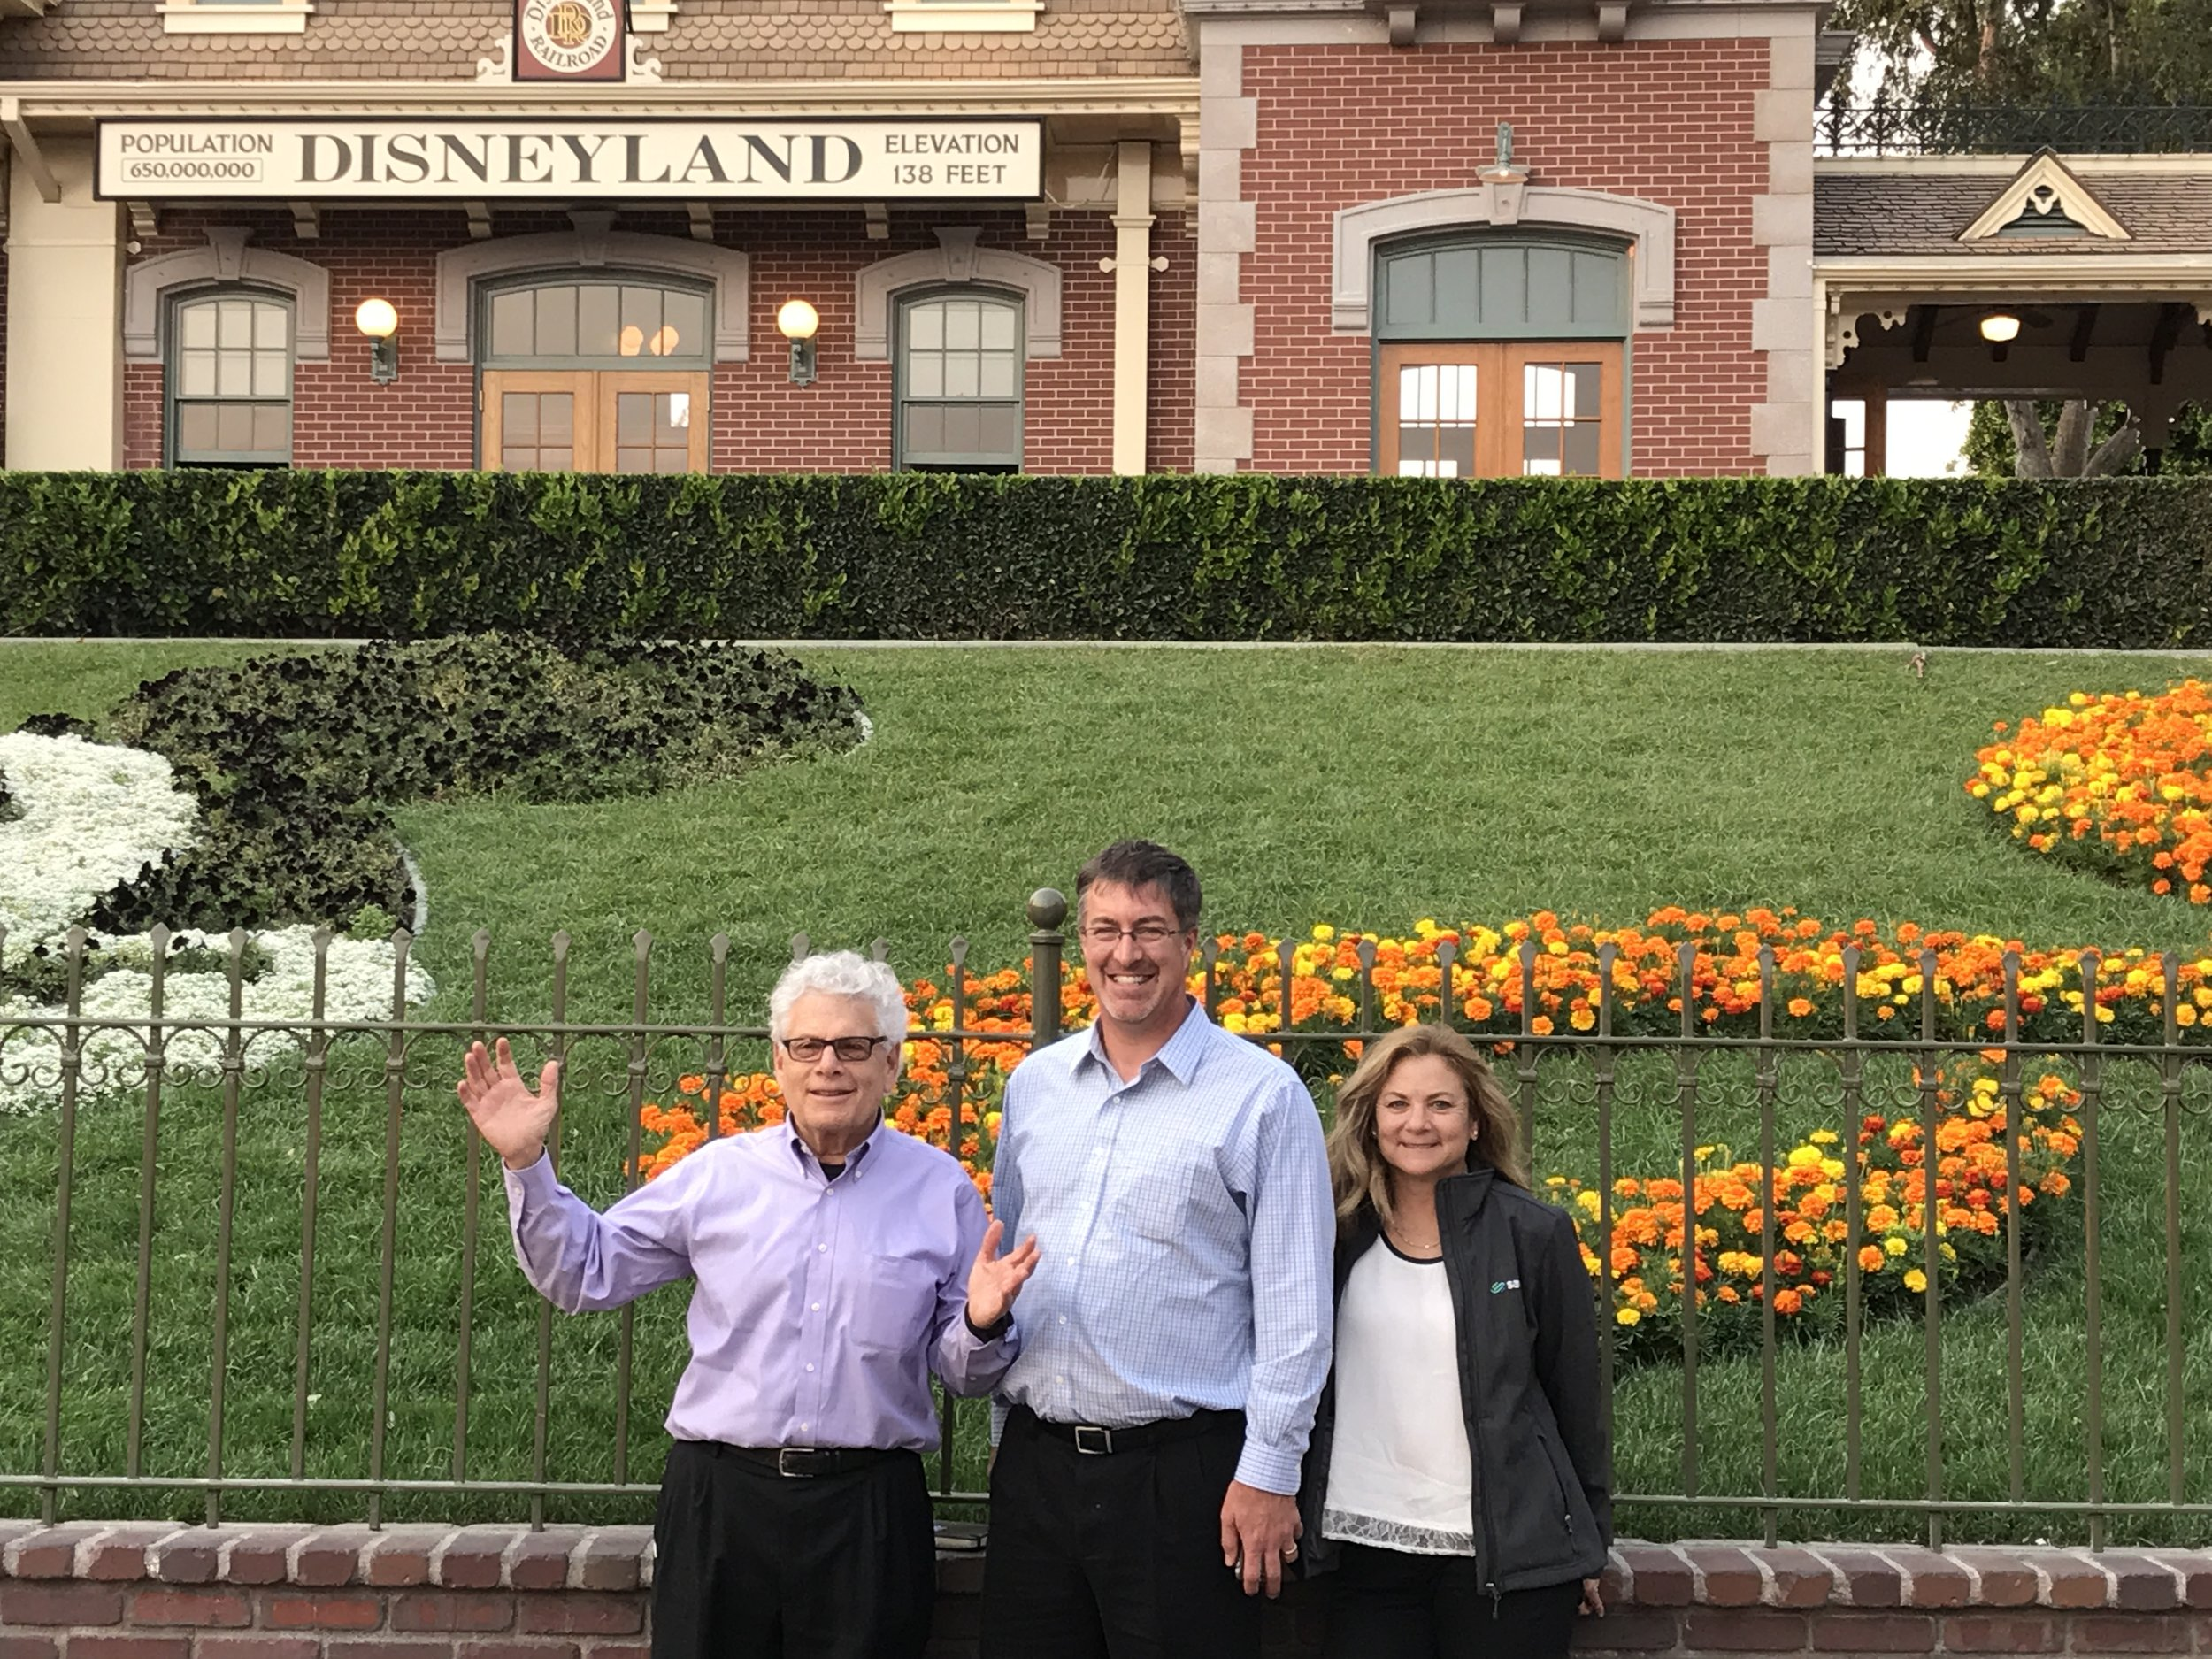 Savioke's Bob Bauer, Steve Cousins, and Lauren Schechtman take a break from Demo Day rehearsals to visit the Happiest Place on Earth.